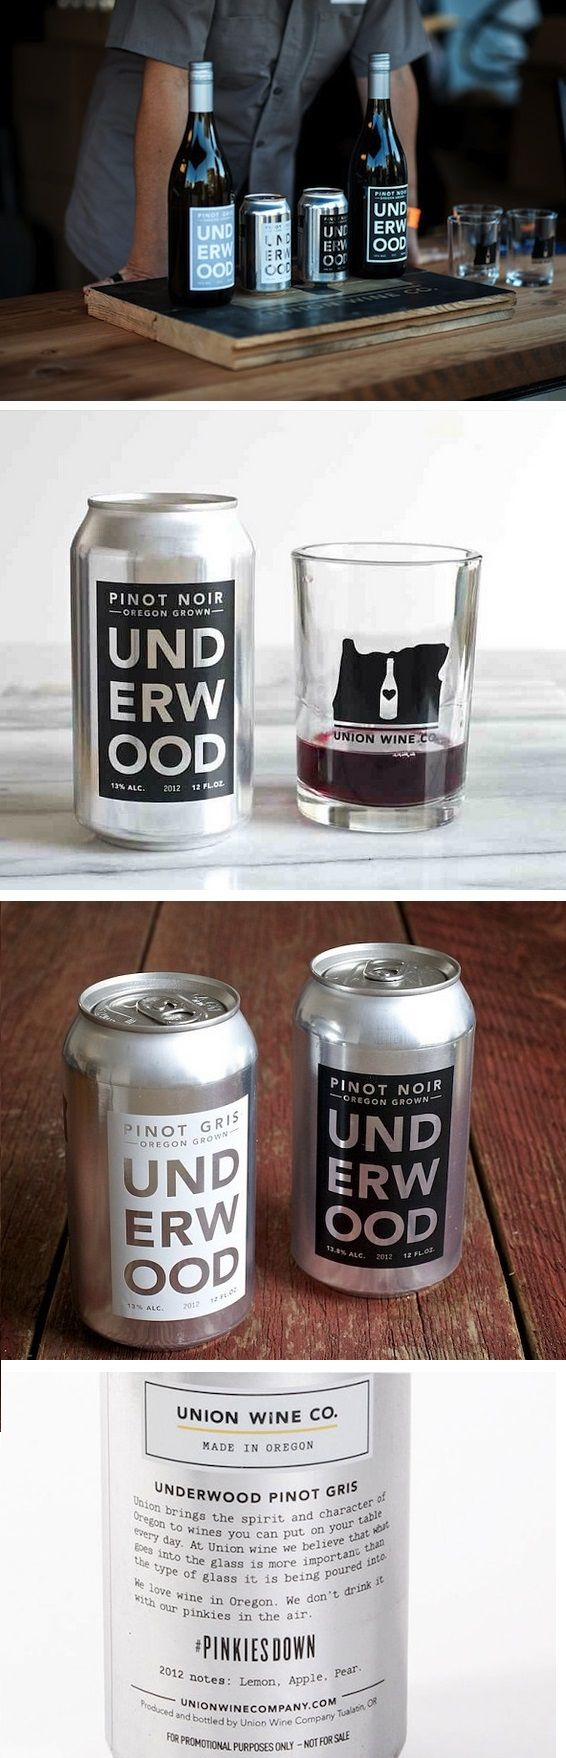 Check out this unusual creative packaging solution by the Union Wine Company - would you drink wine from a beer can?